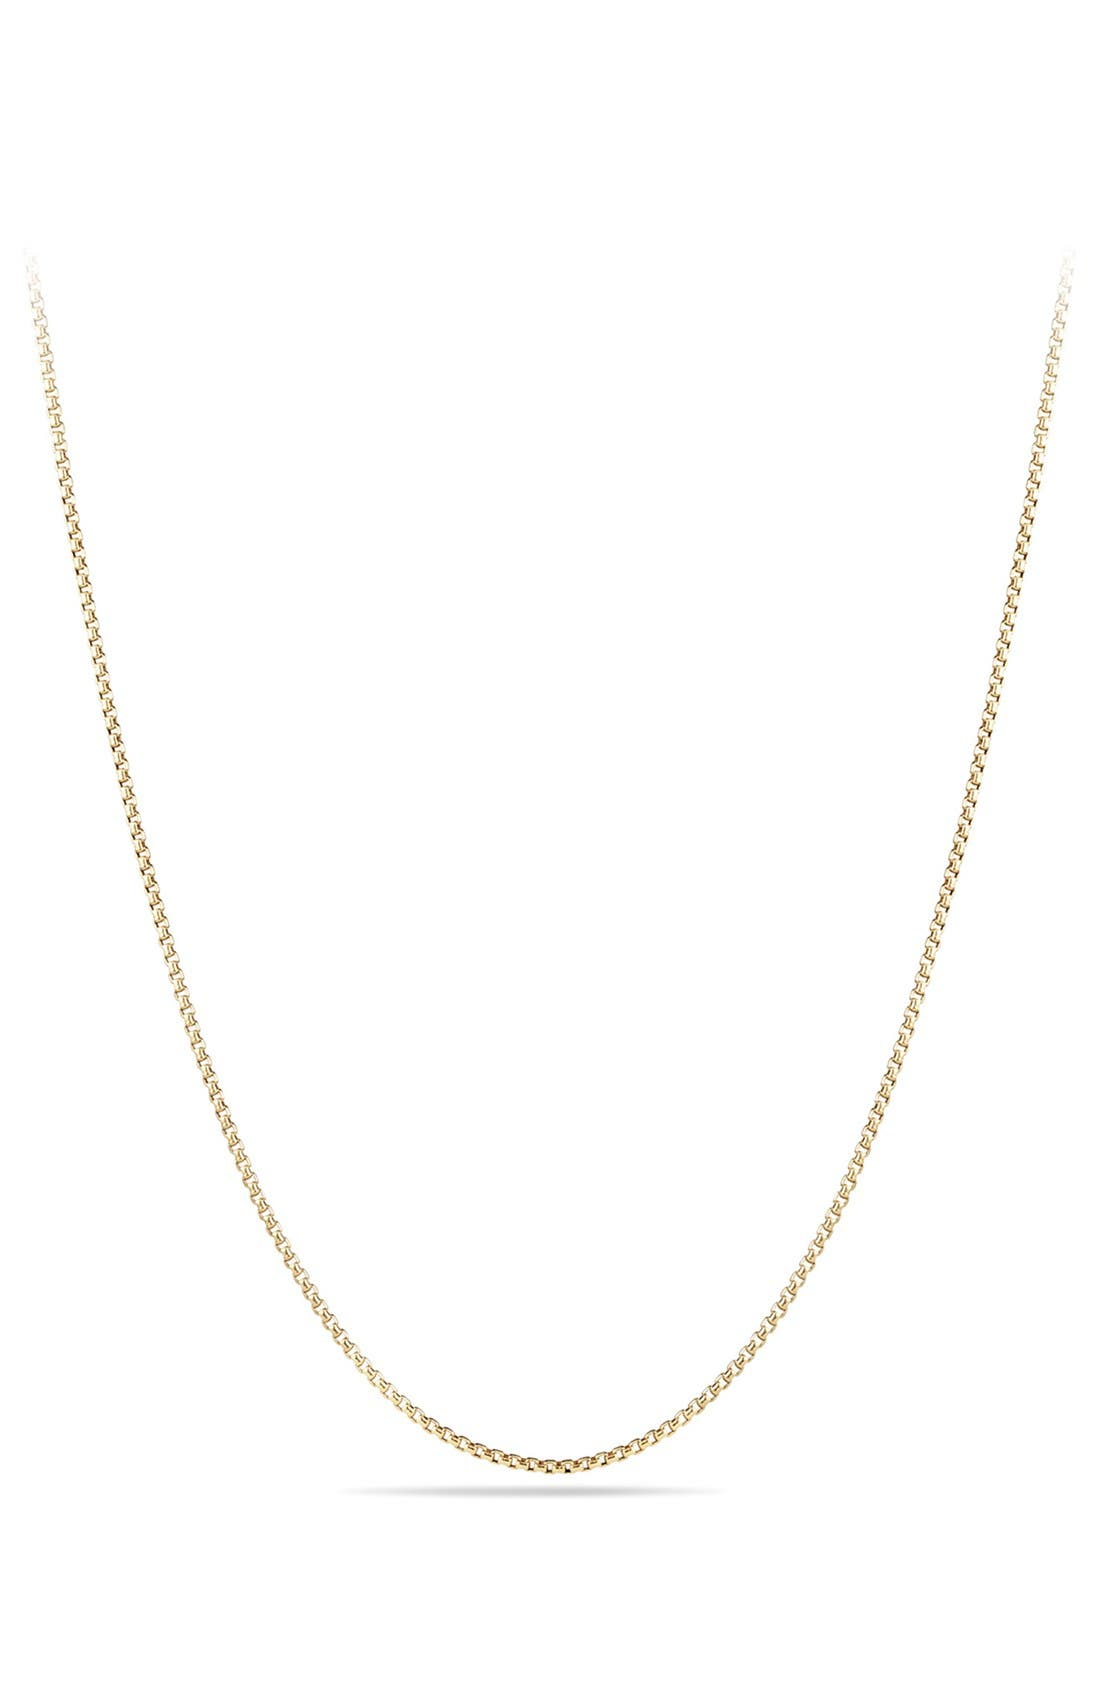 Box Chain Necklace in 18K Gold,                         Main,                         color, Yellow Gold